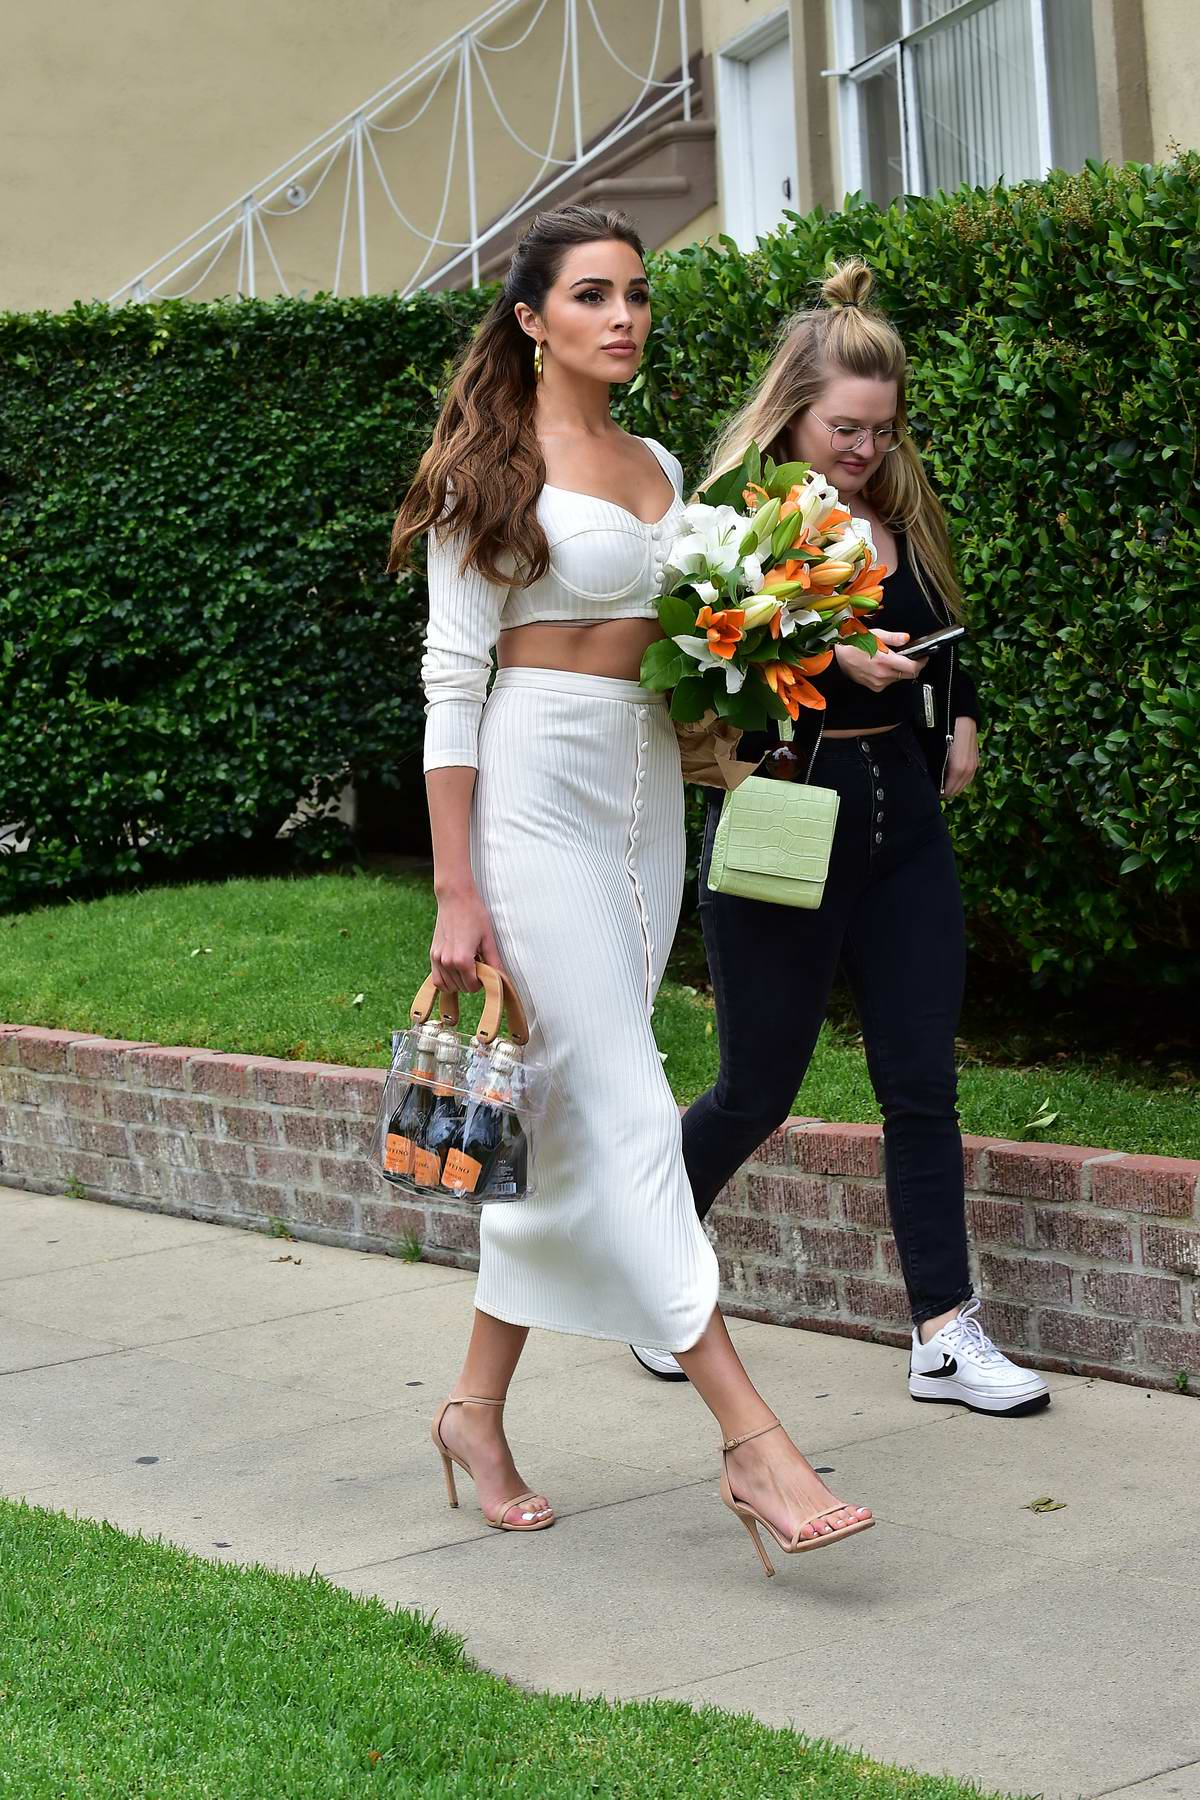 Olivia Culpo looks gorgeous in white as she steps out carrying a pack of wines and flowers in Los Angeles